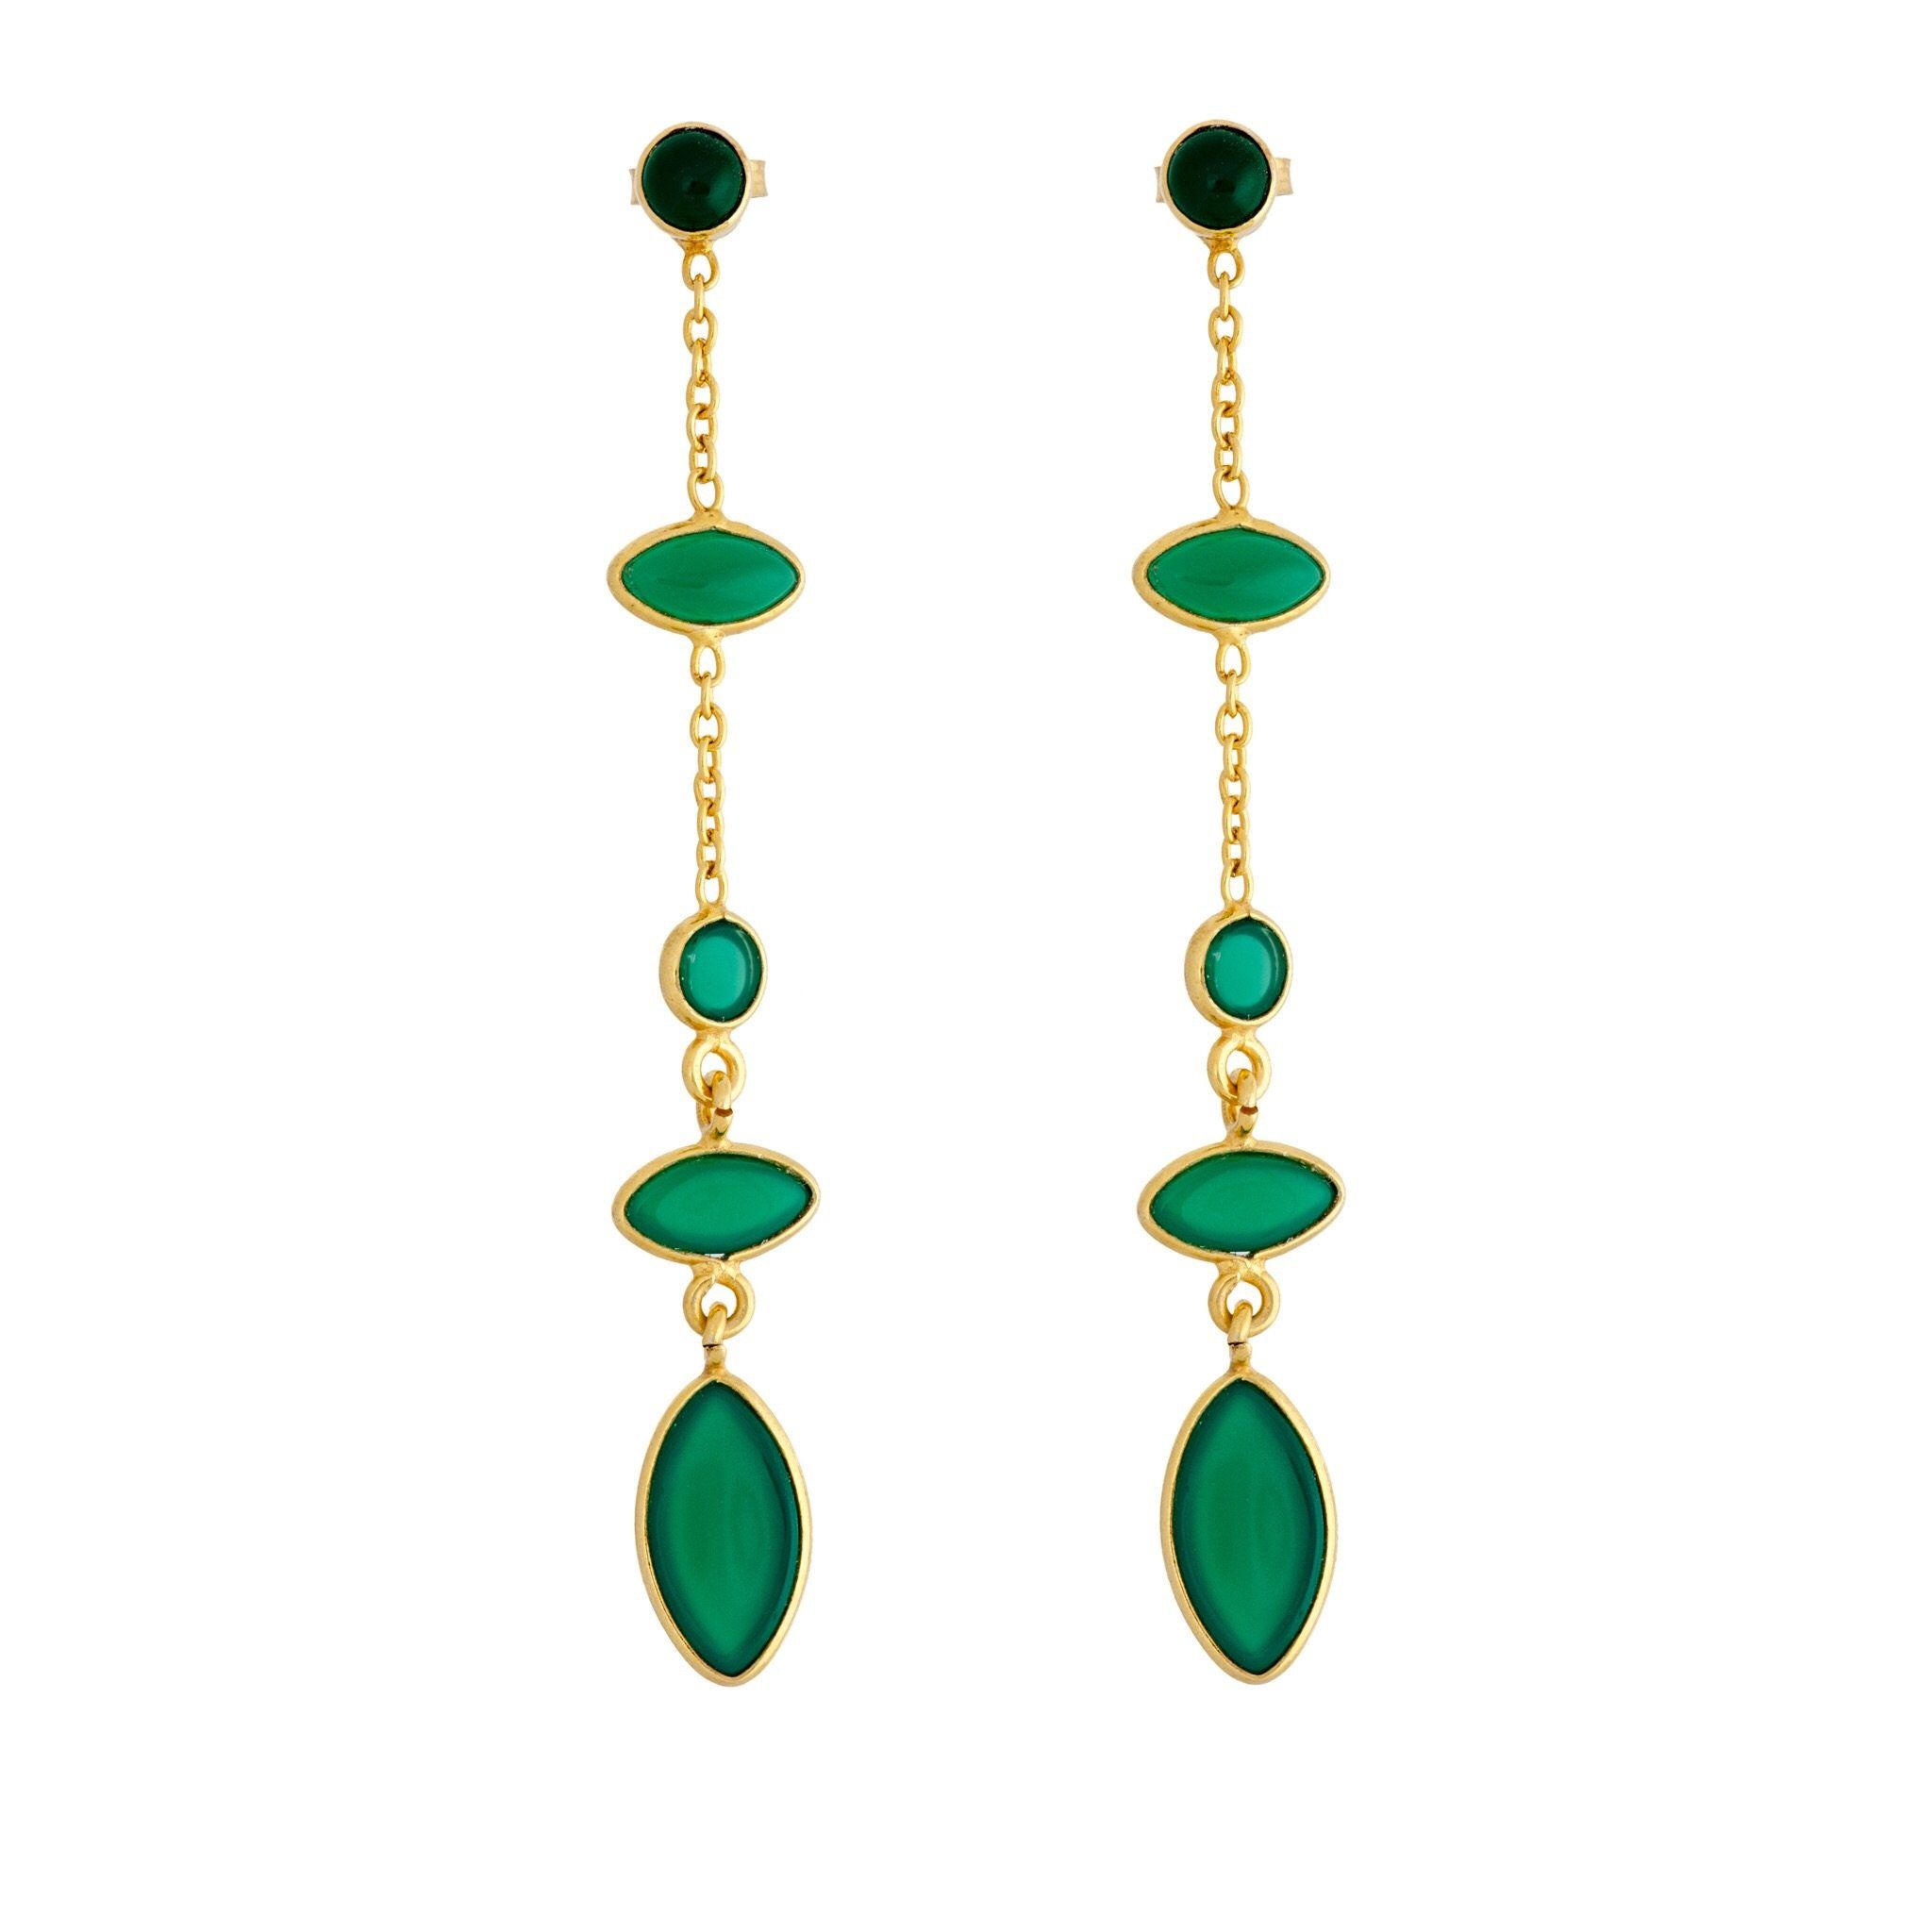 TA green onyx earrings - MadamSiam